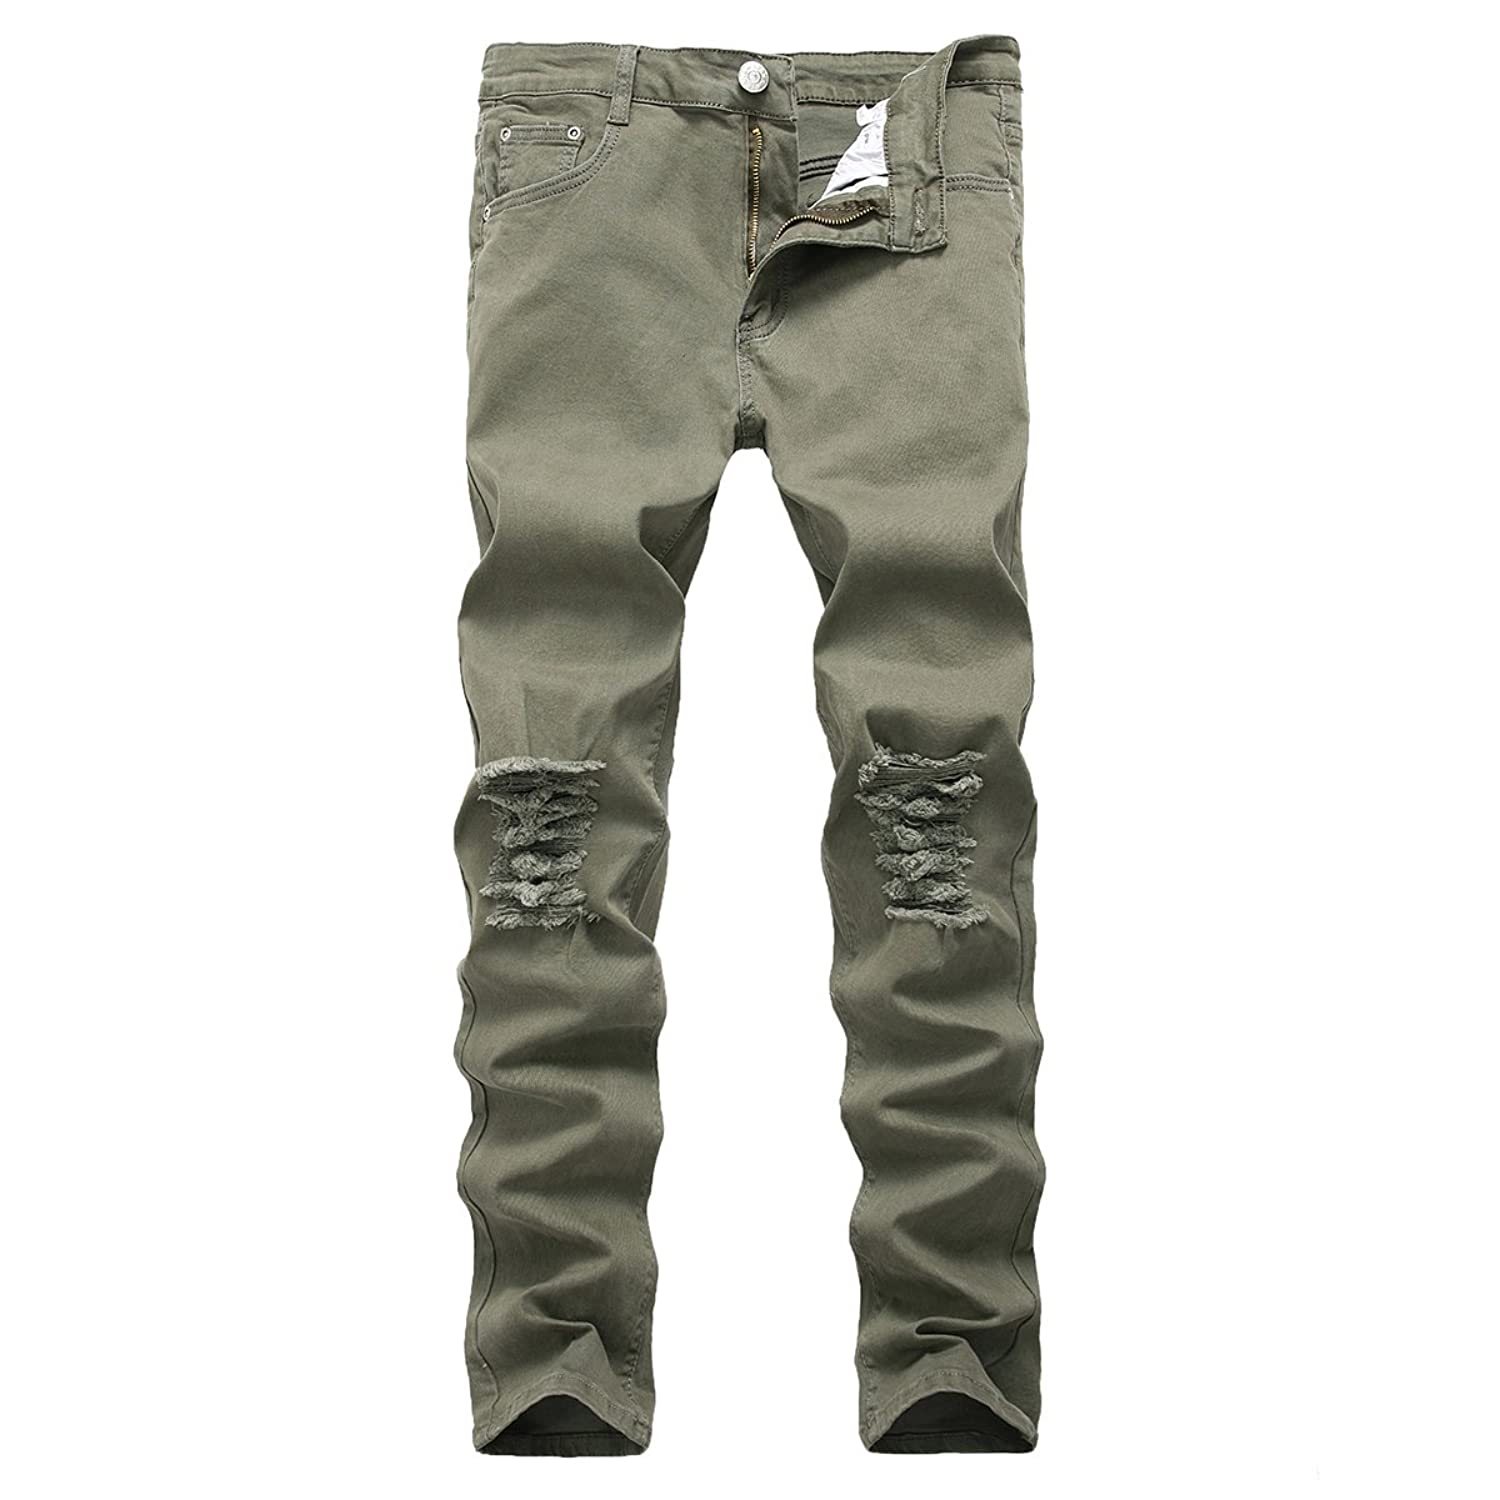 b377a6664ee Online Cheap wholesale PrettyChic Mens Ripped Jeans Vintage Fitted Stretchy  Tapered Leg Destroyed Jeans Jeans Suppliers